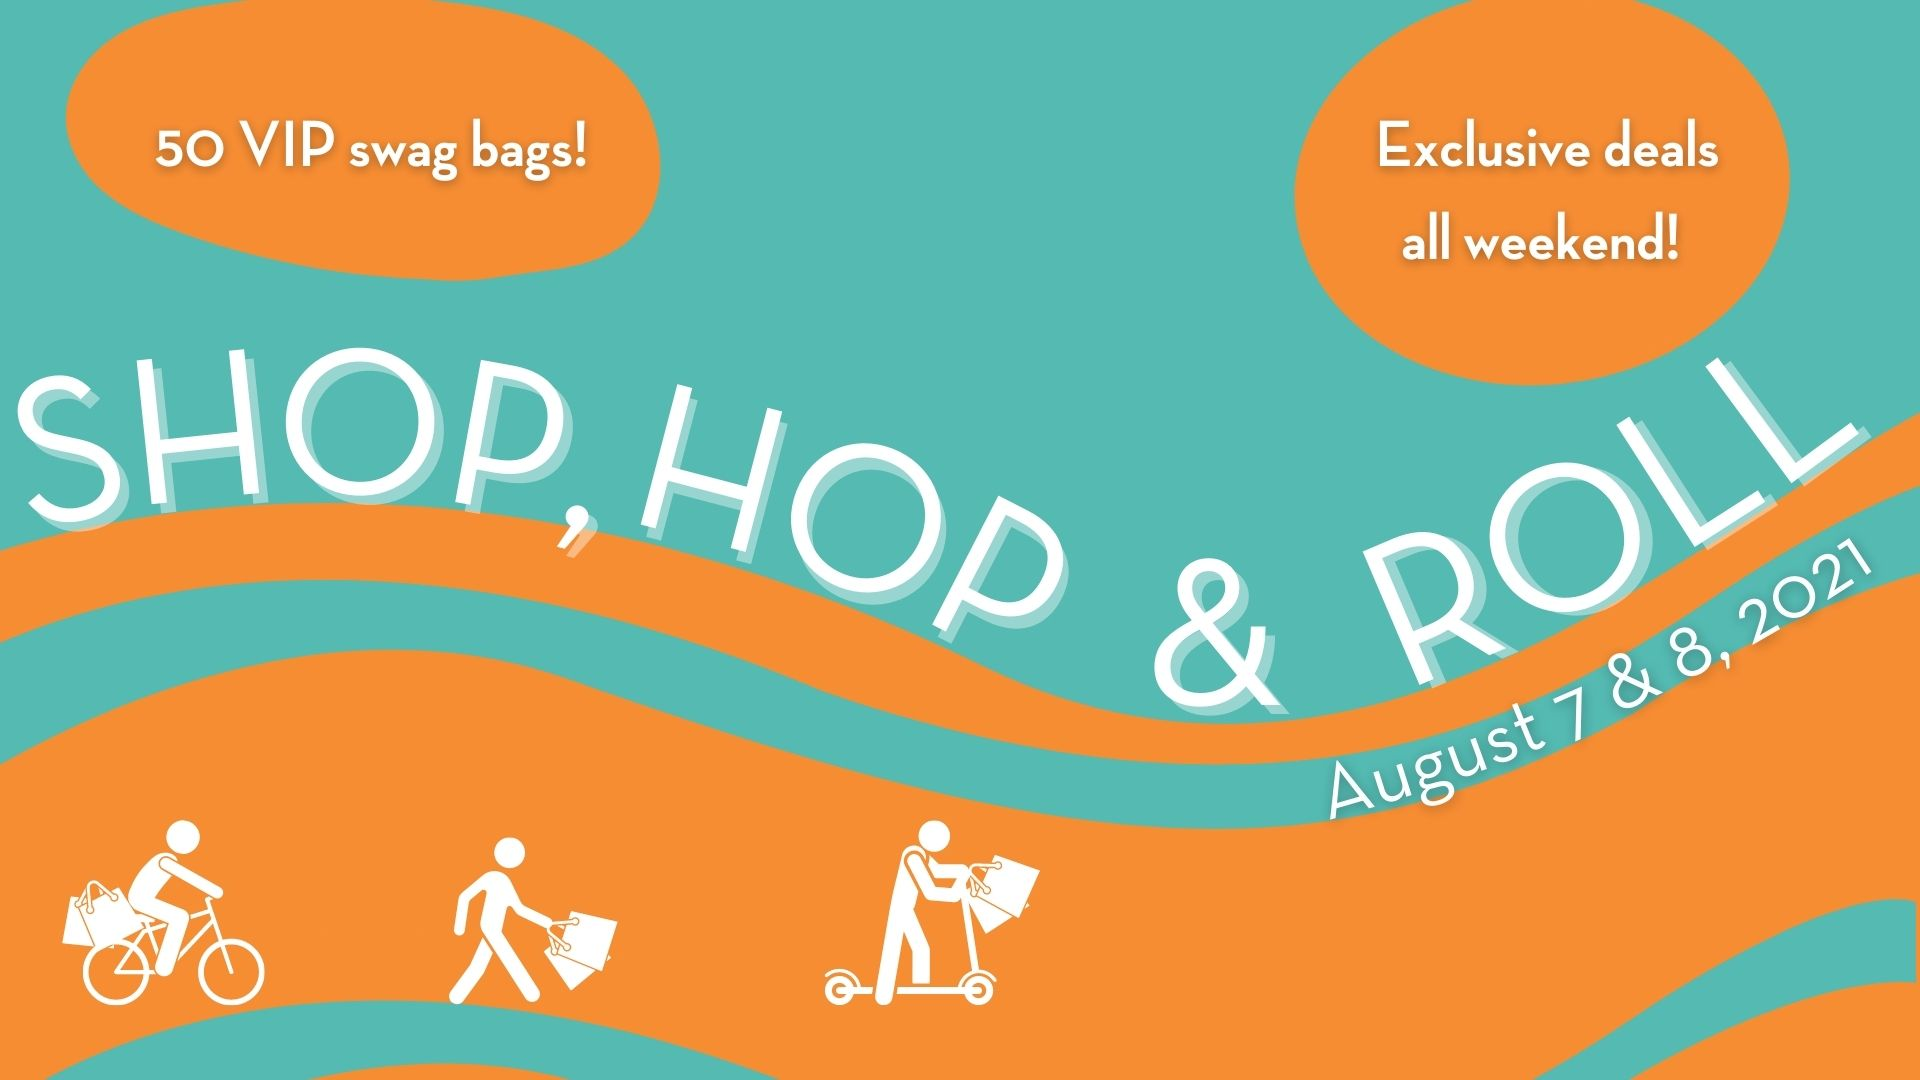 """Title """"Shop Hop and Roll"""" and dates of August 7 and 8 wind on rolling lines of orange and light blue. Shoppers walking, biking and on a scooter carry bags."""